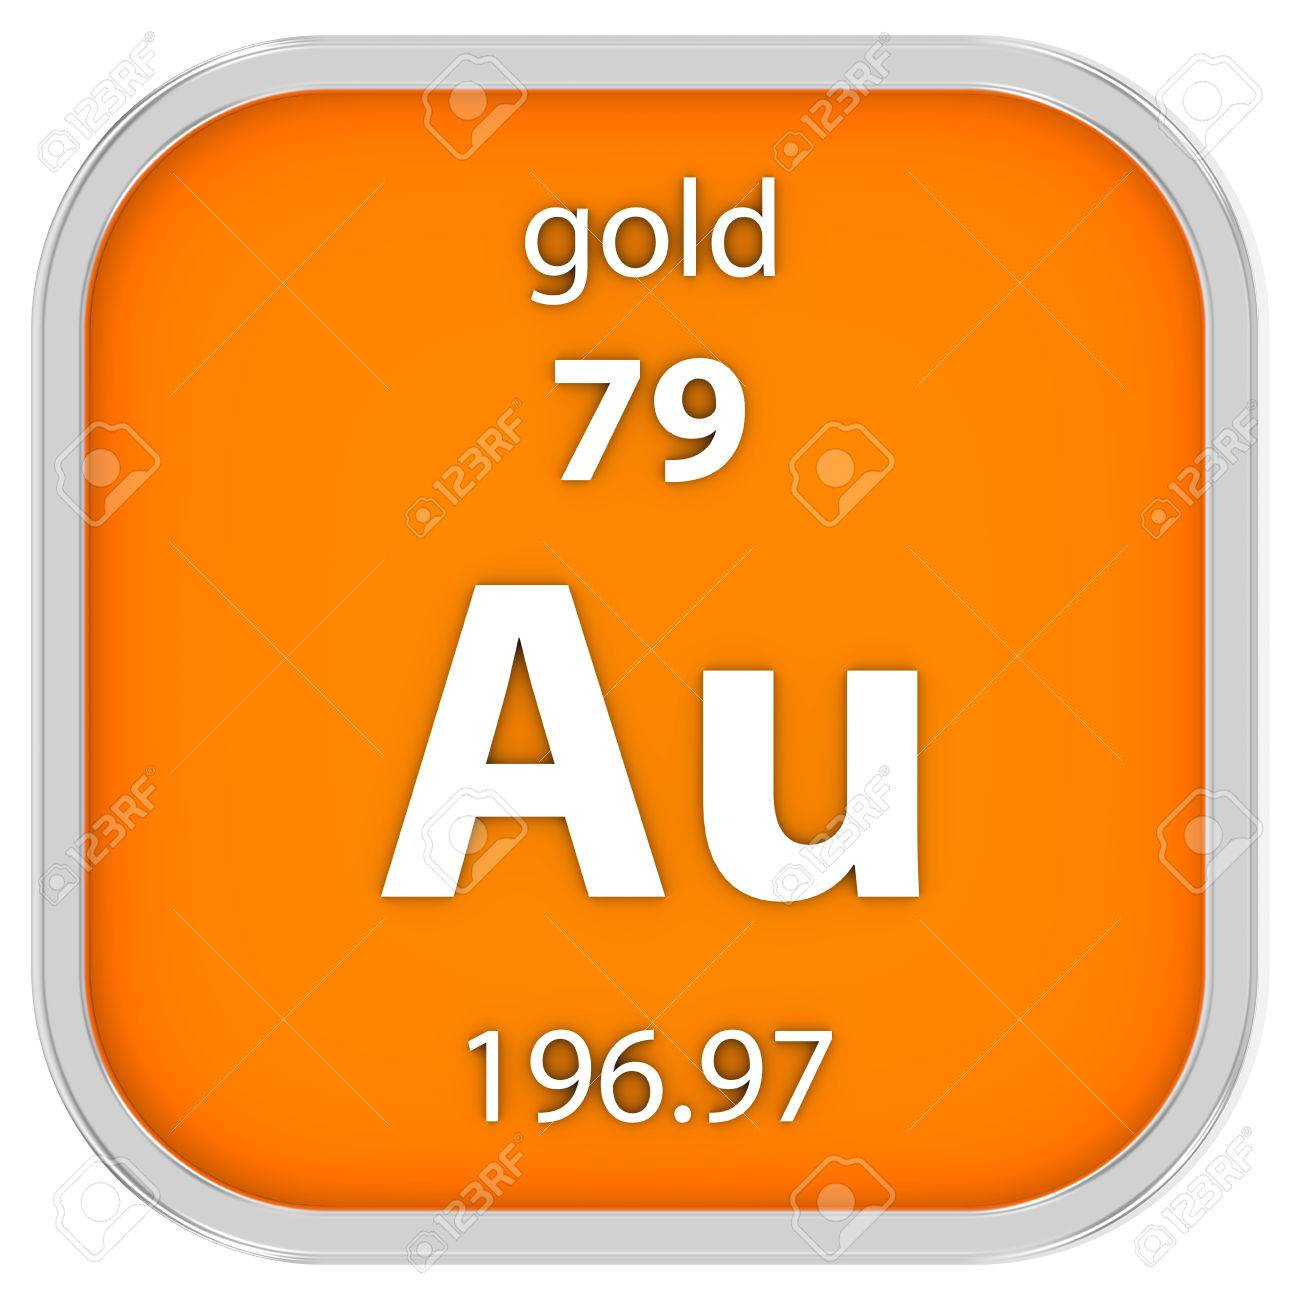 Gold material on the periodic table part of a series stock photo gold material on the periodic table part of a series stock photo 40452871 biocorpaavc